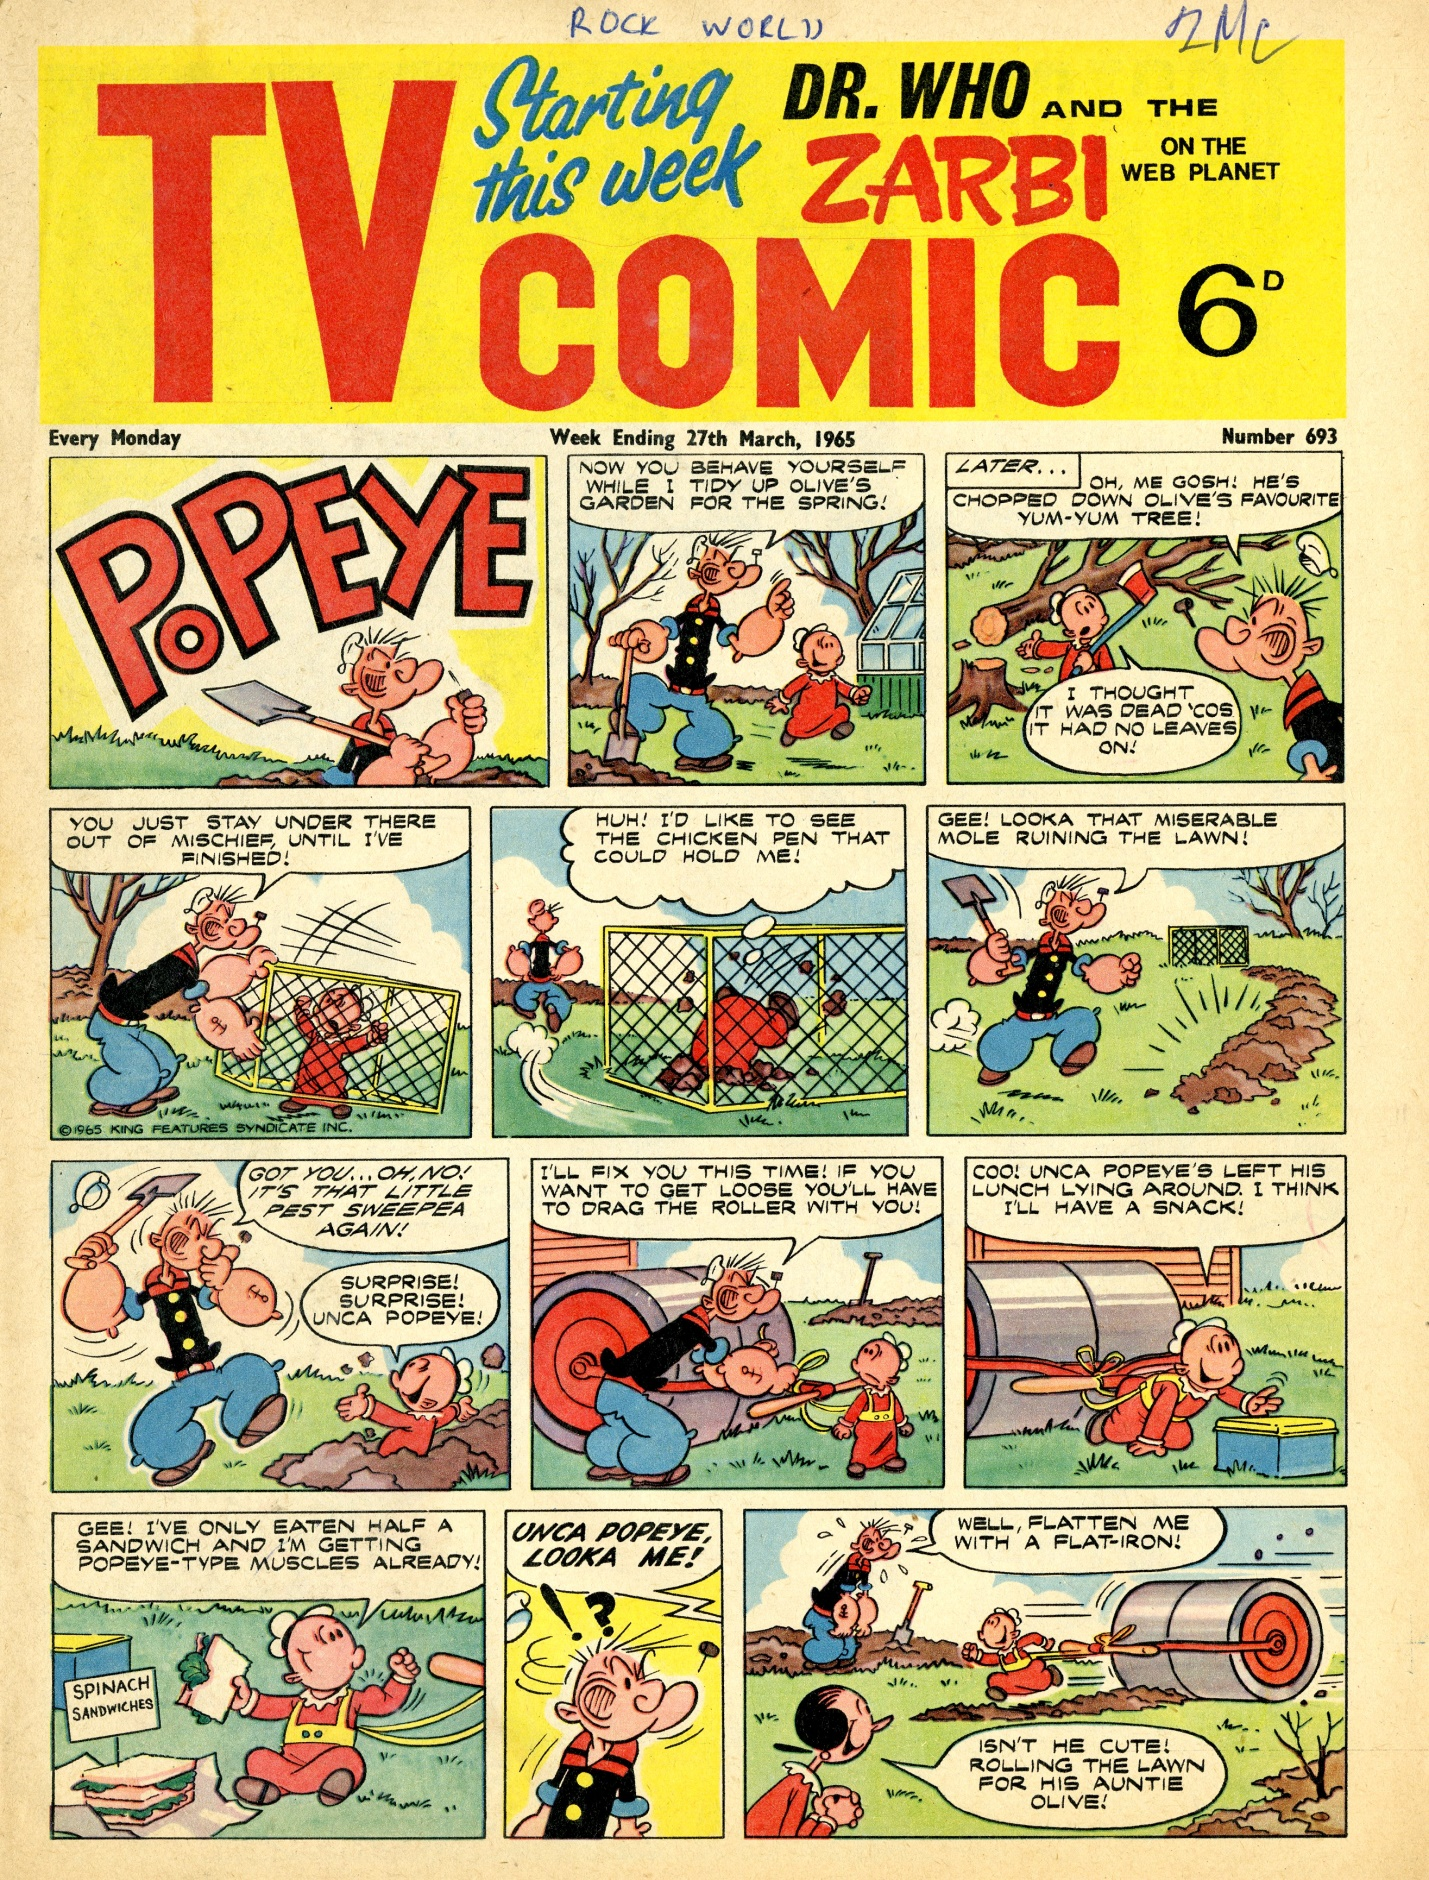 TV Comic #693, March 27, 1965 with cover introducing the Zarbi